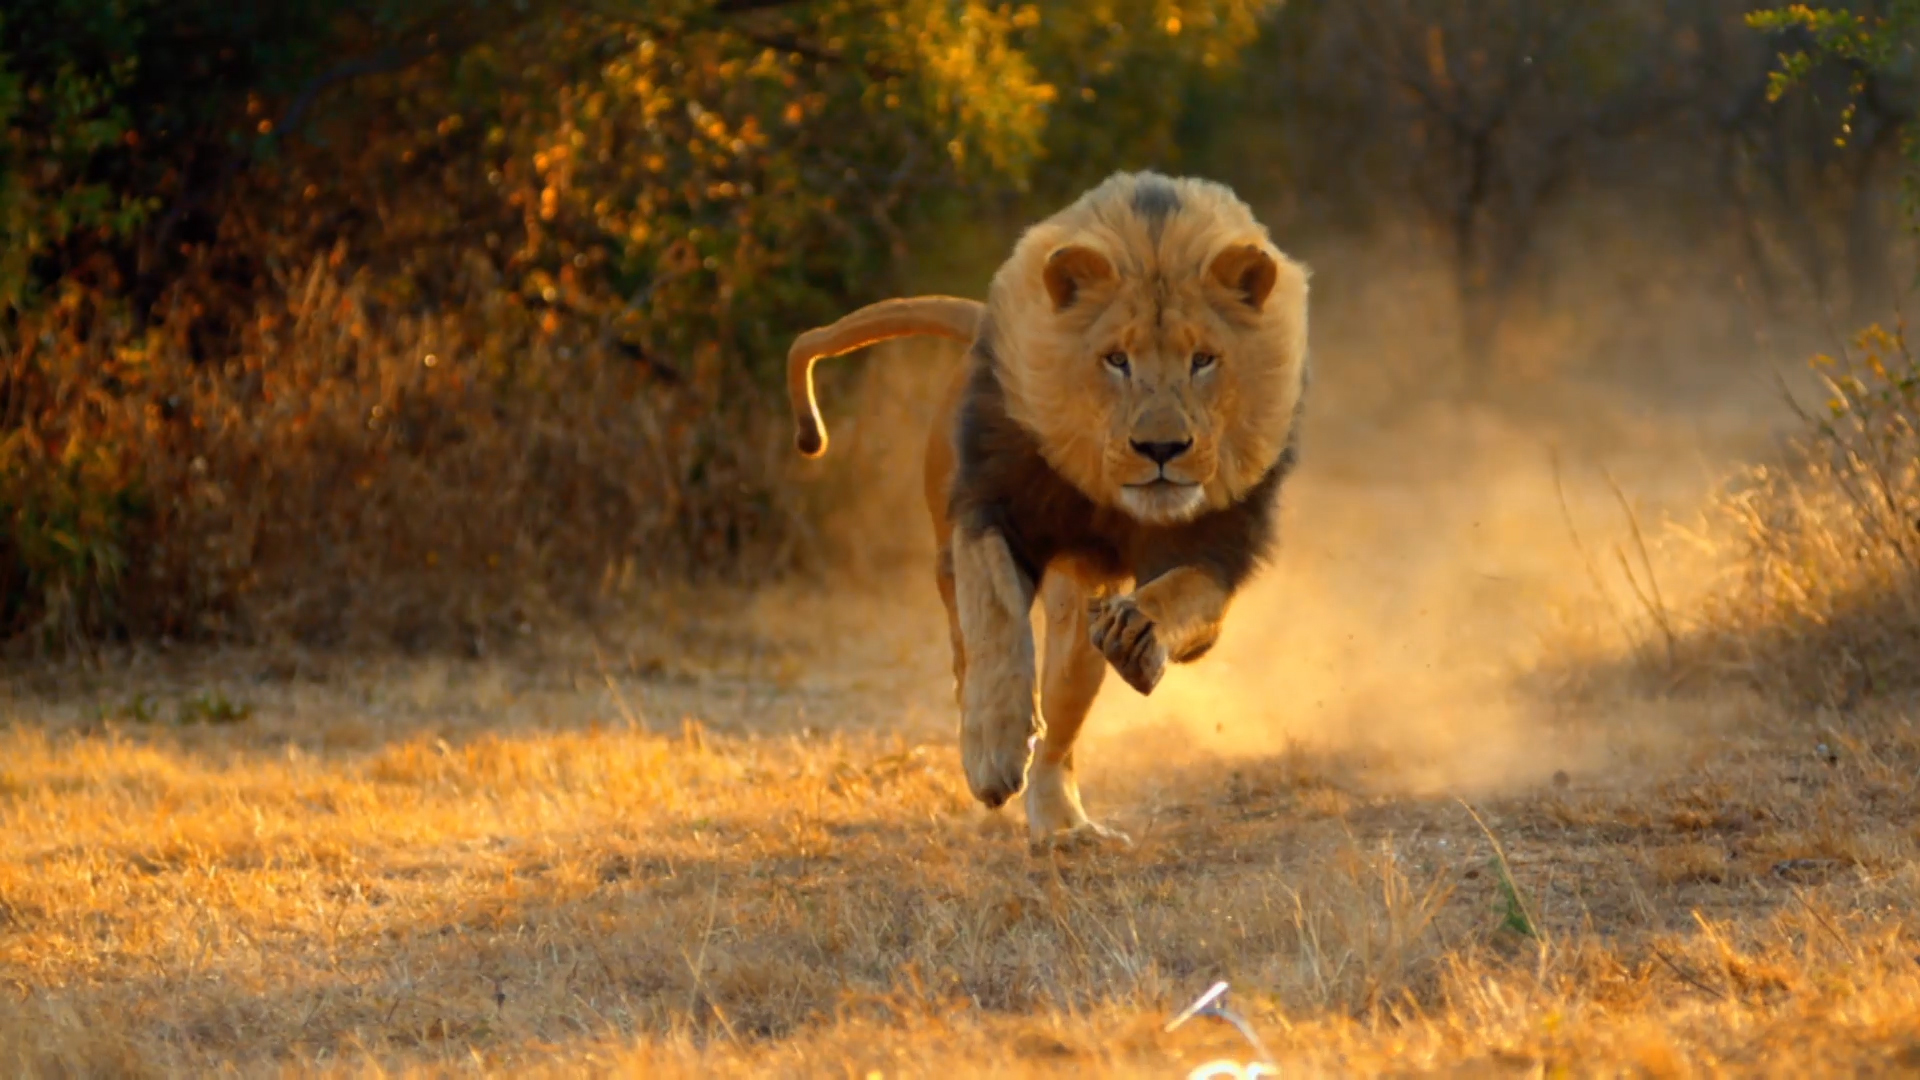 Fast Running Lions - Big Cat Week Video - National Geographic Channel